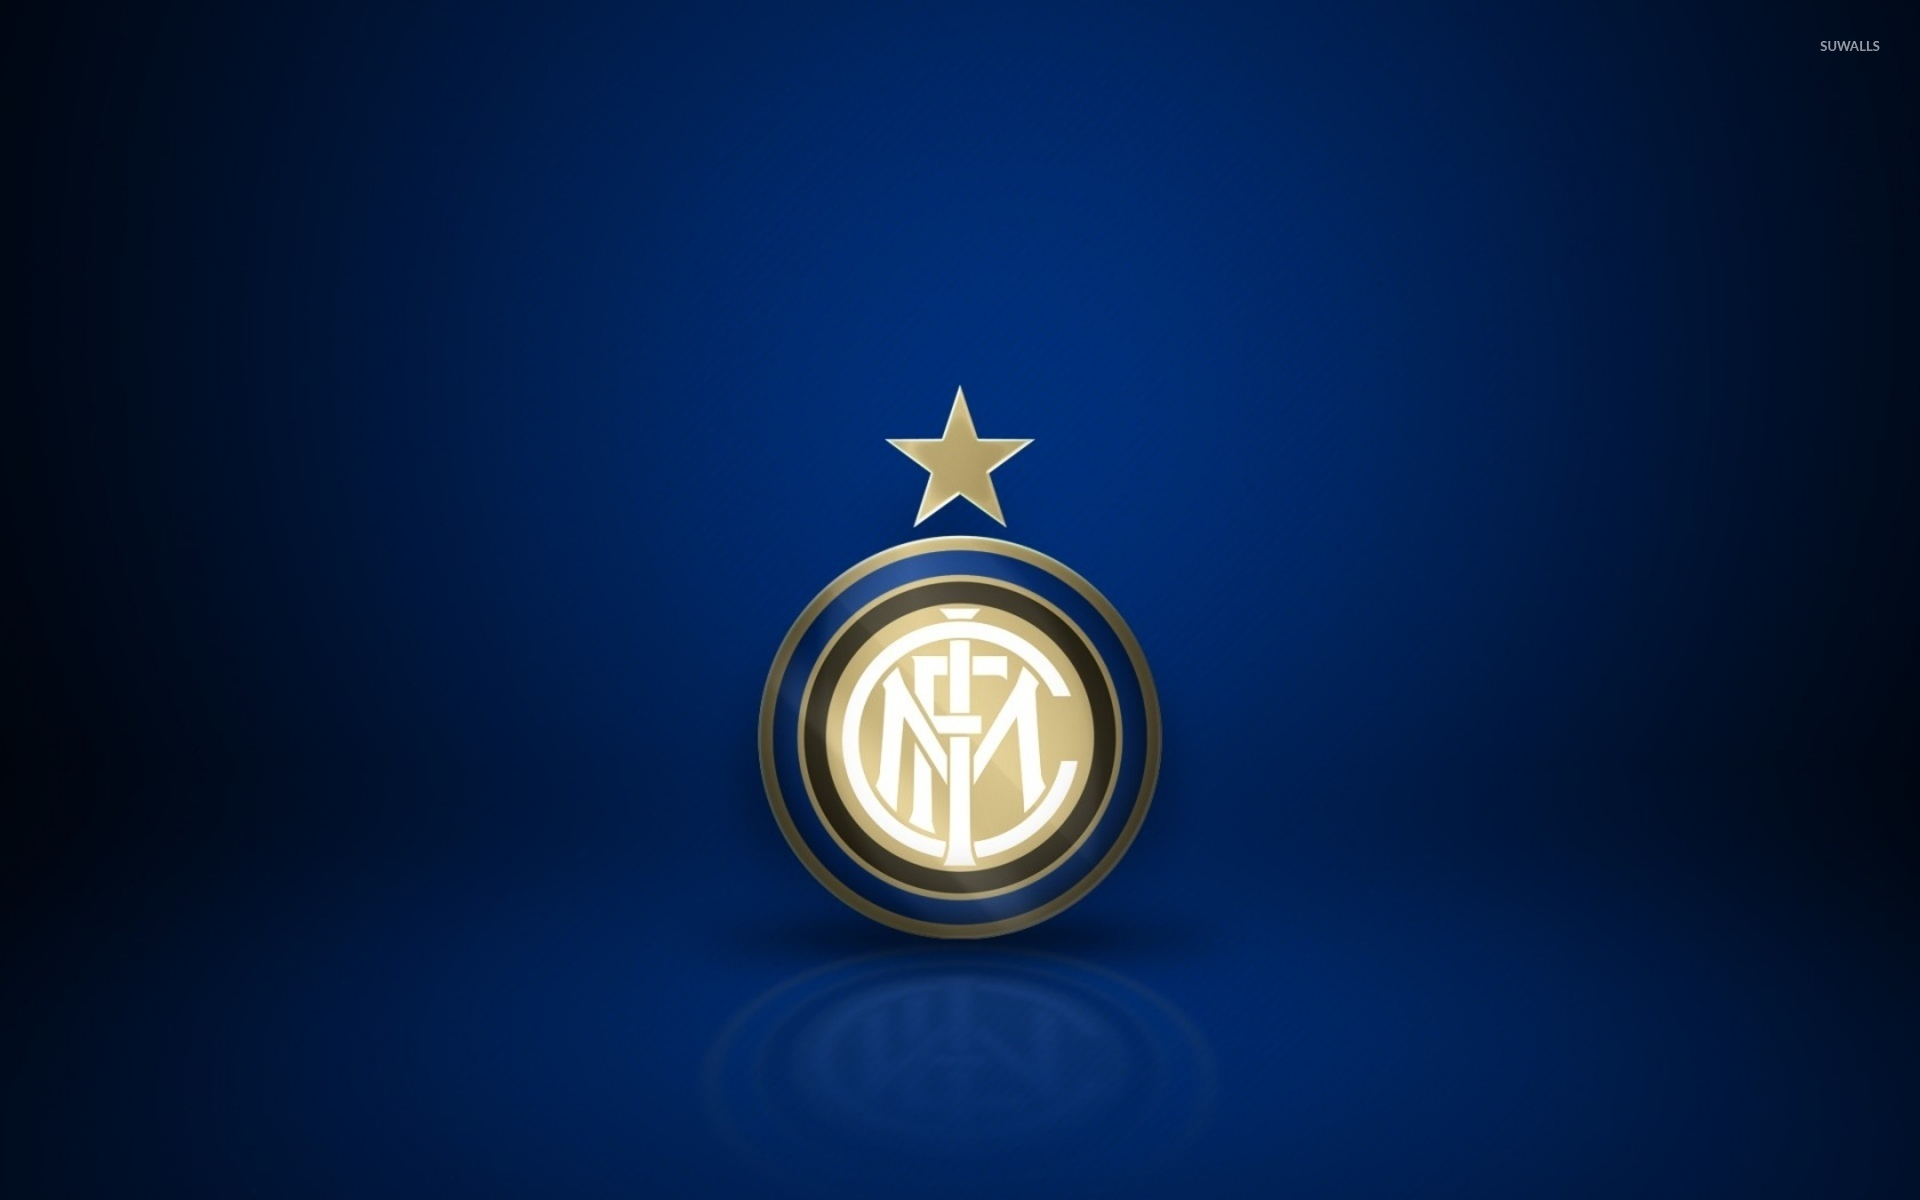 Star of italy inter milan wallpaper sport wallpapers 48616 star of italy inter milan wallpaper voltagebd Image collections